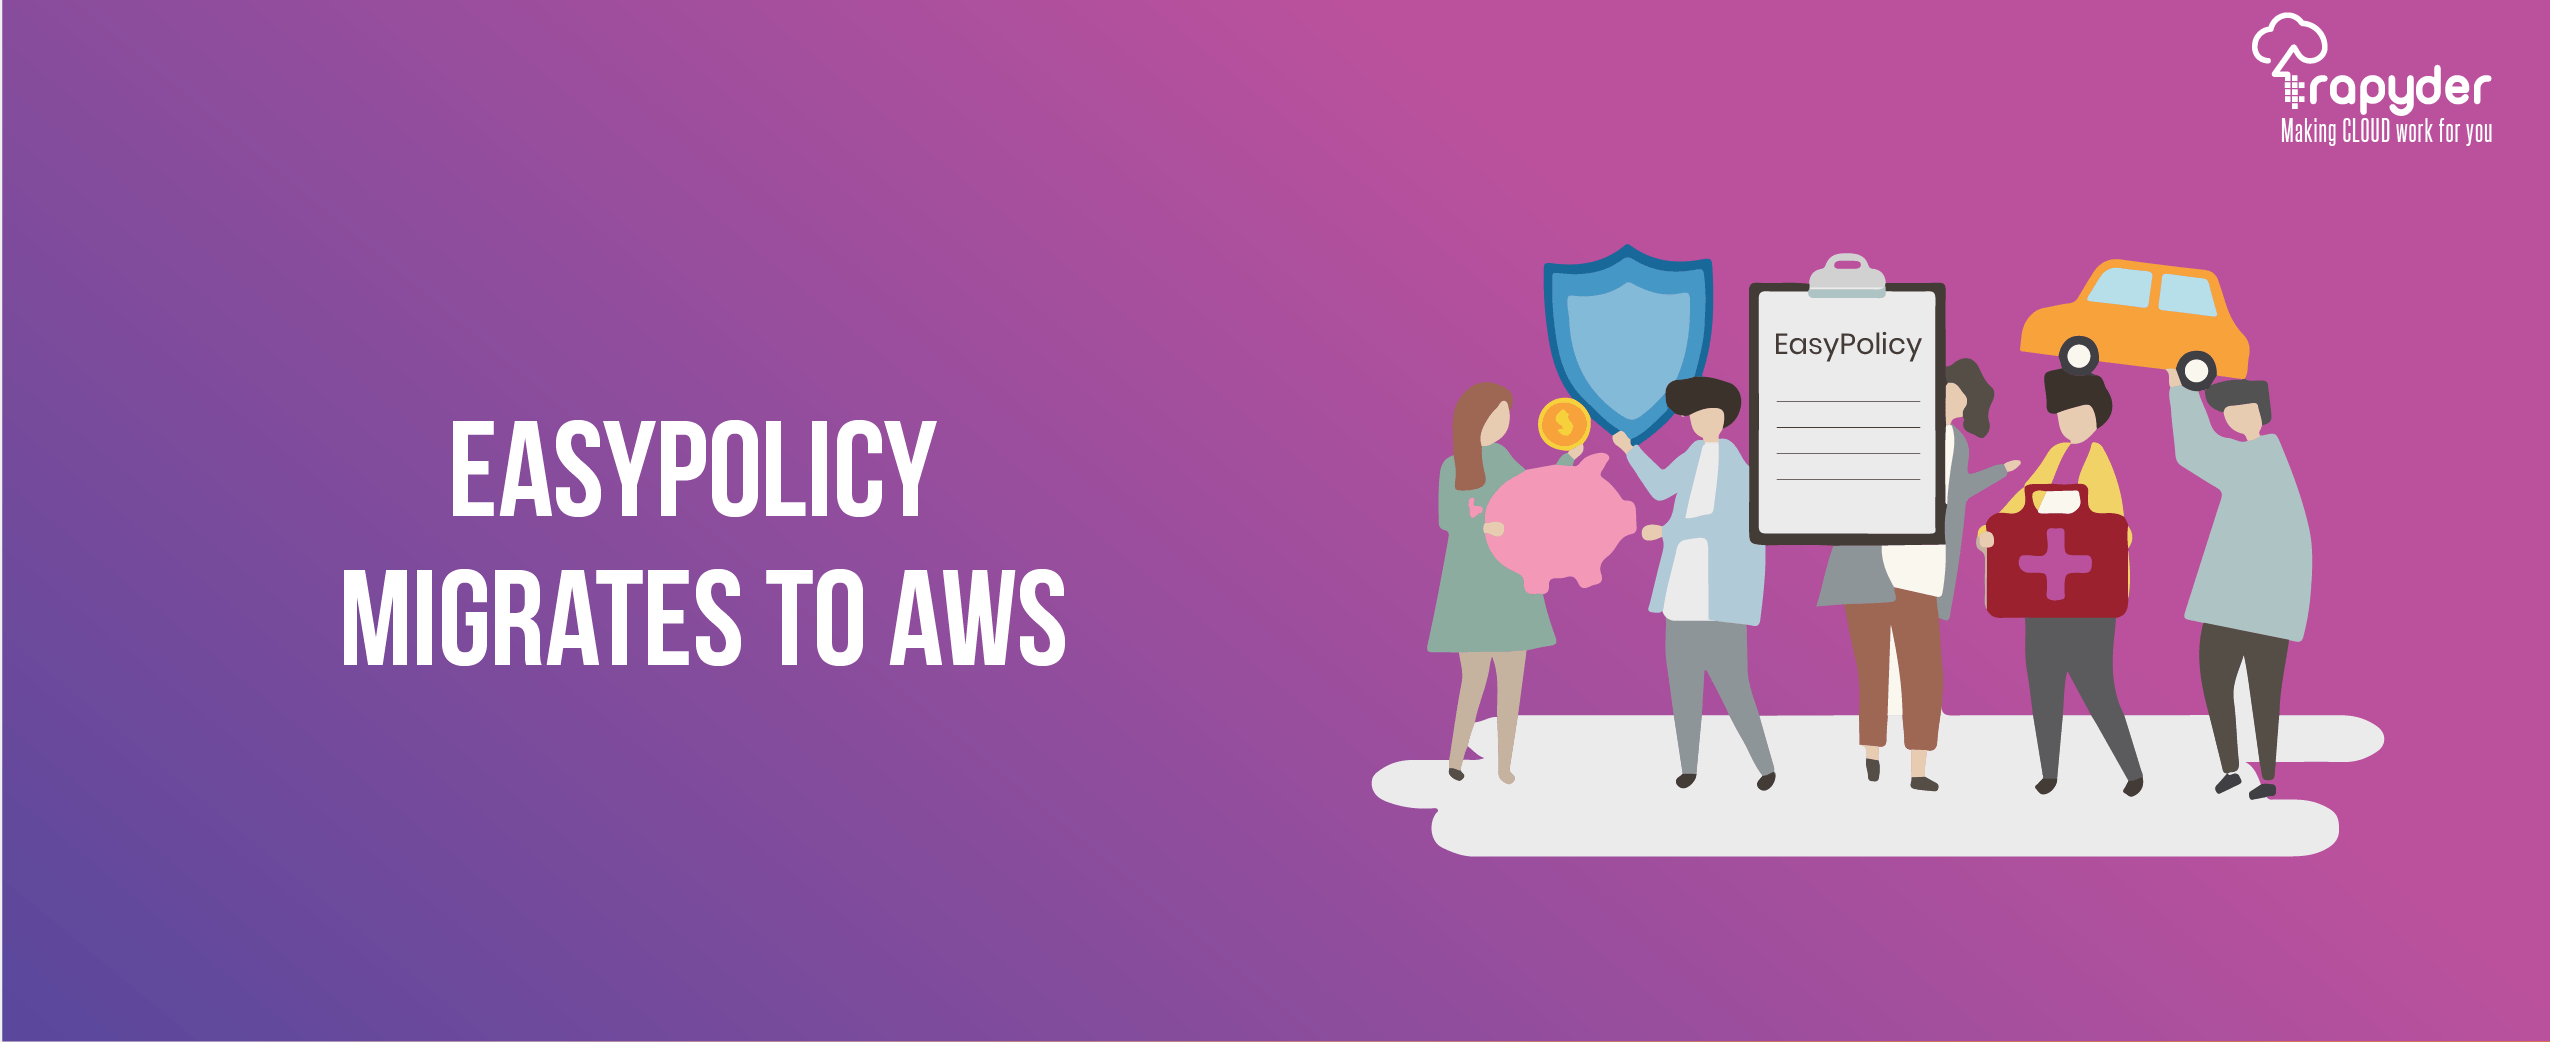 EASYPOLICY 01 - Easypolicy migrates to AWS